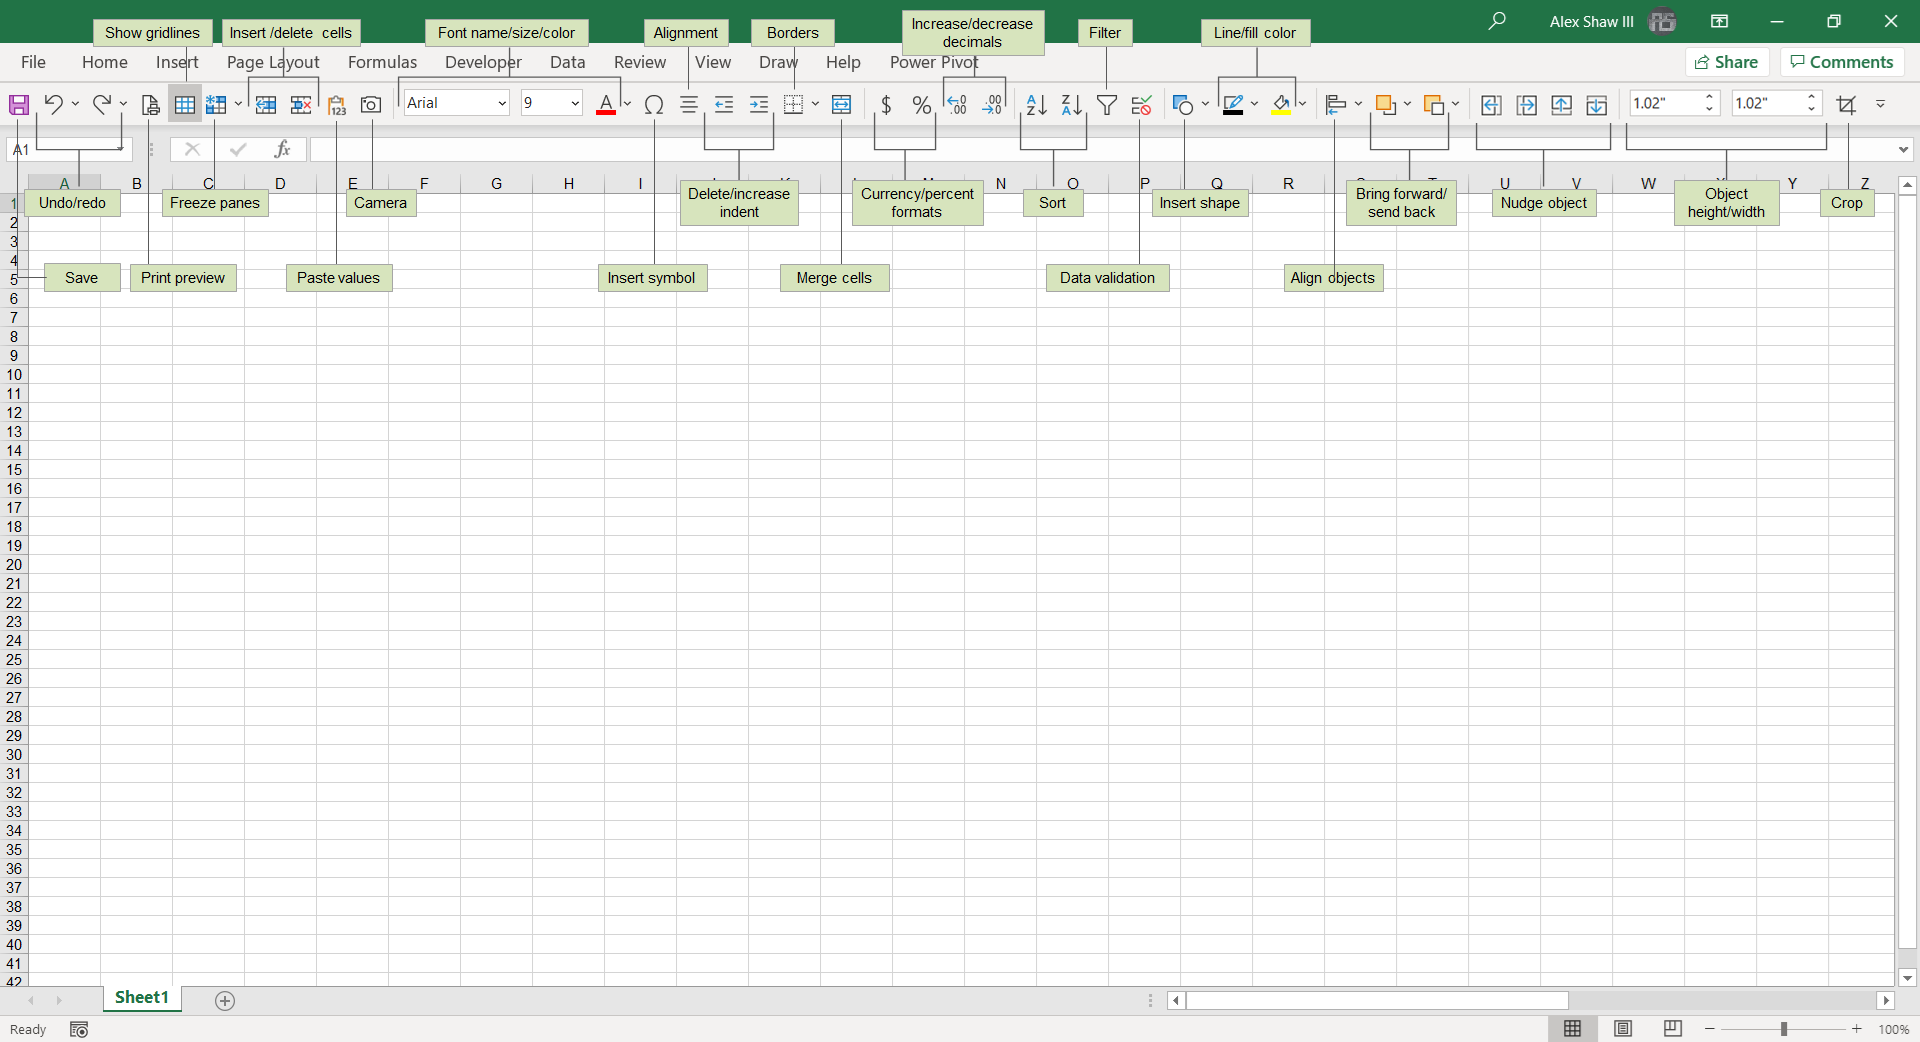 Sample Quick Access Toolbar from Excel